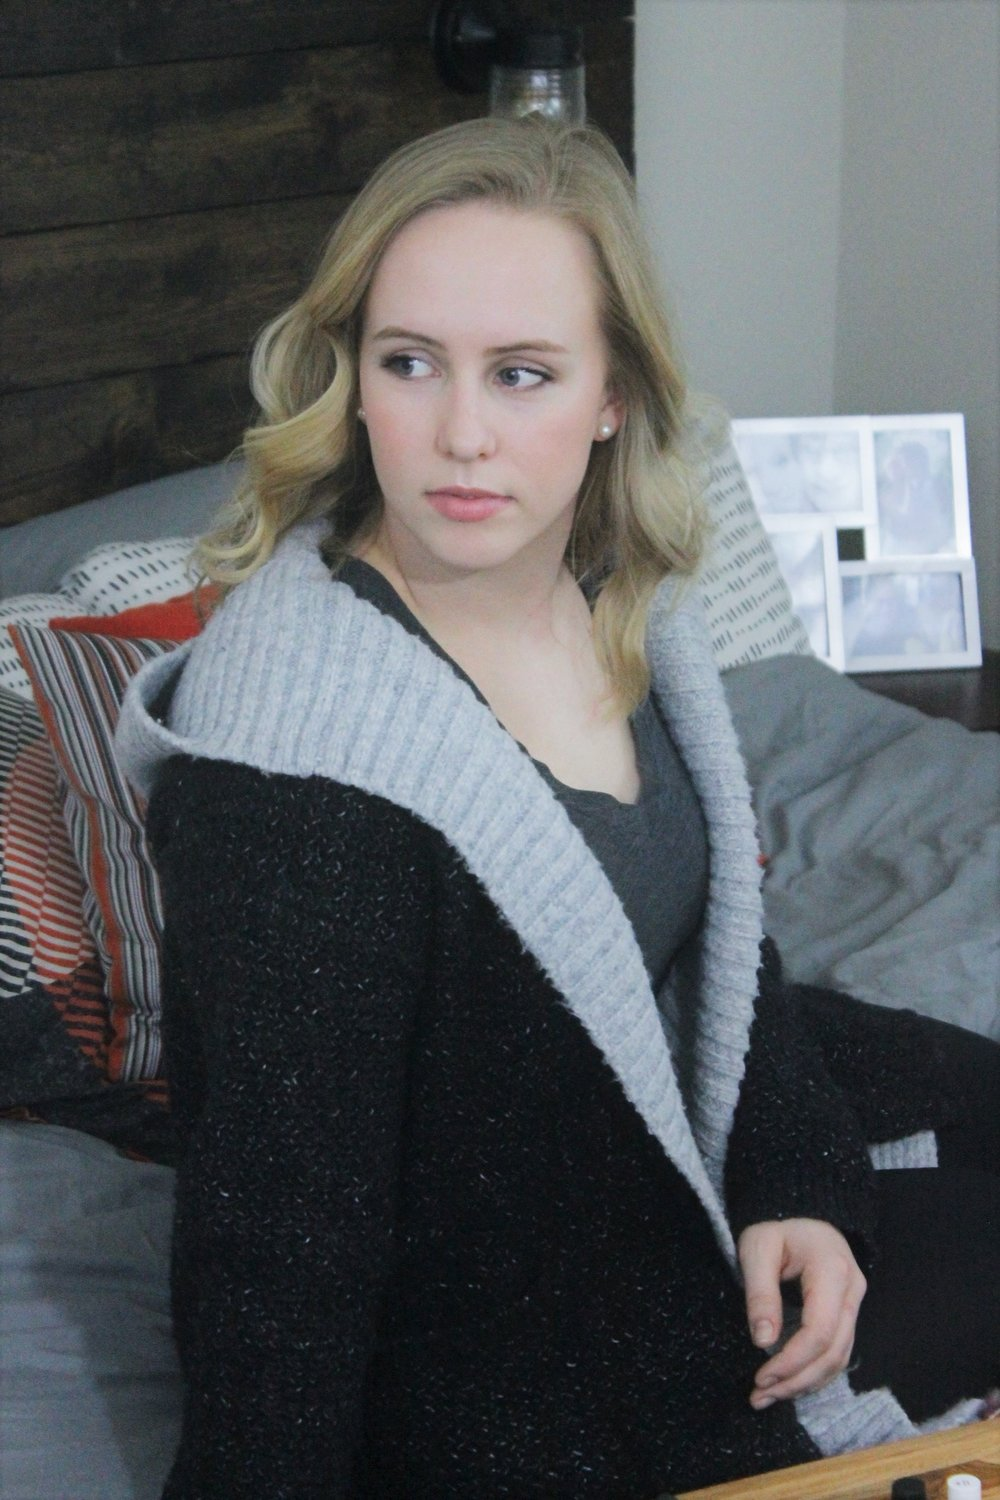 Cozy Weeknight | Nail Care Favorites | Work & What She Wore